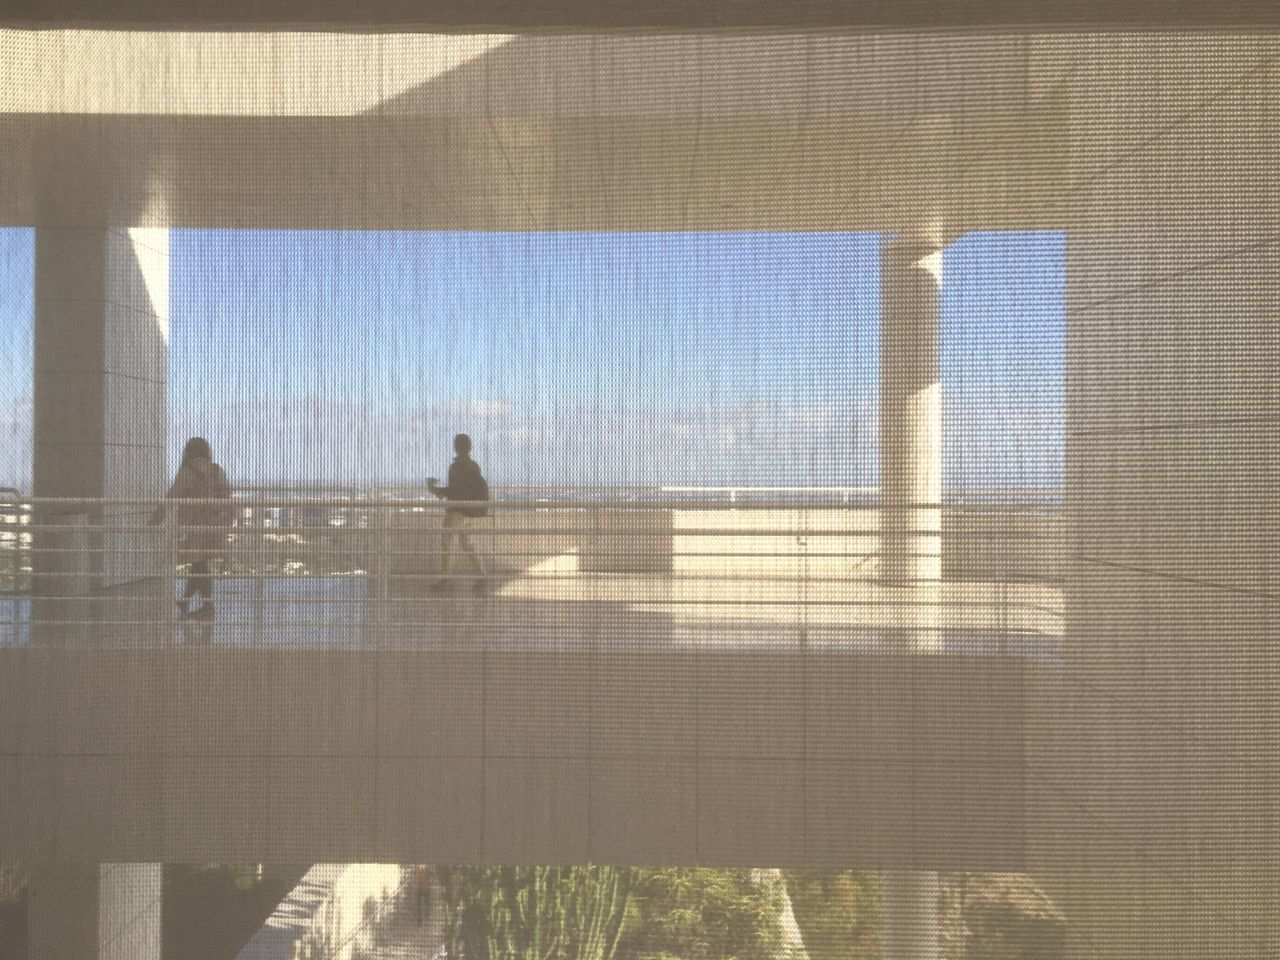 Architecture Built Structure Geometric Shape Rectangular Frame Behind The Shades Architecture The Getty Center Los Angeles, California IPhoneography Light And Shadow Architectural Detail Window Frame